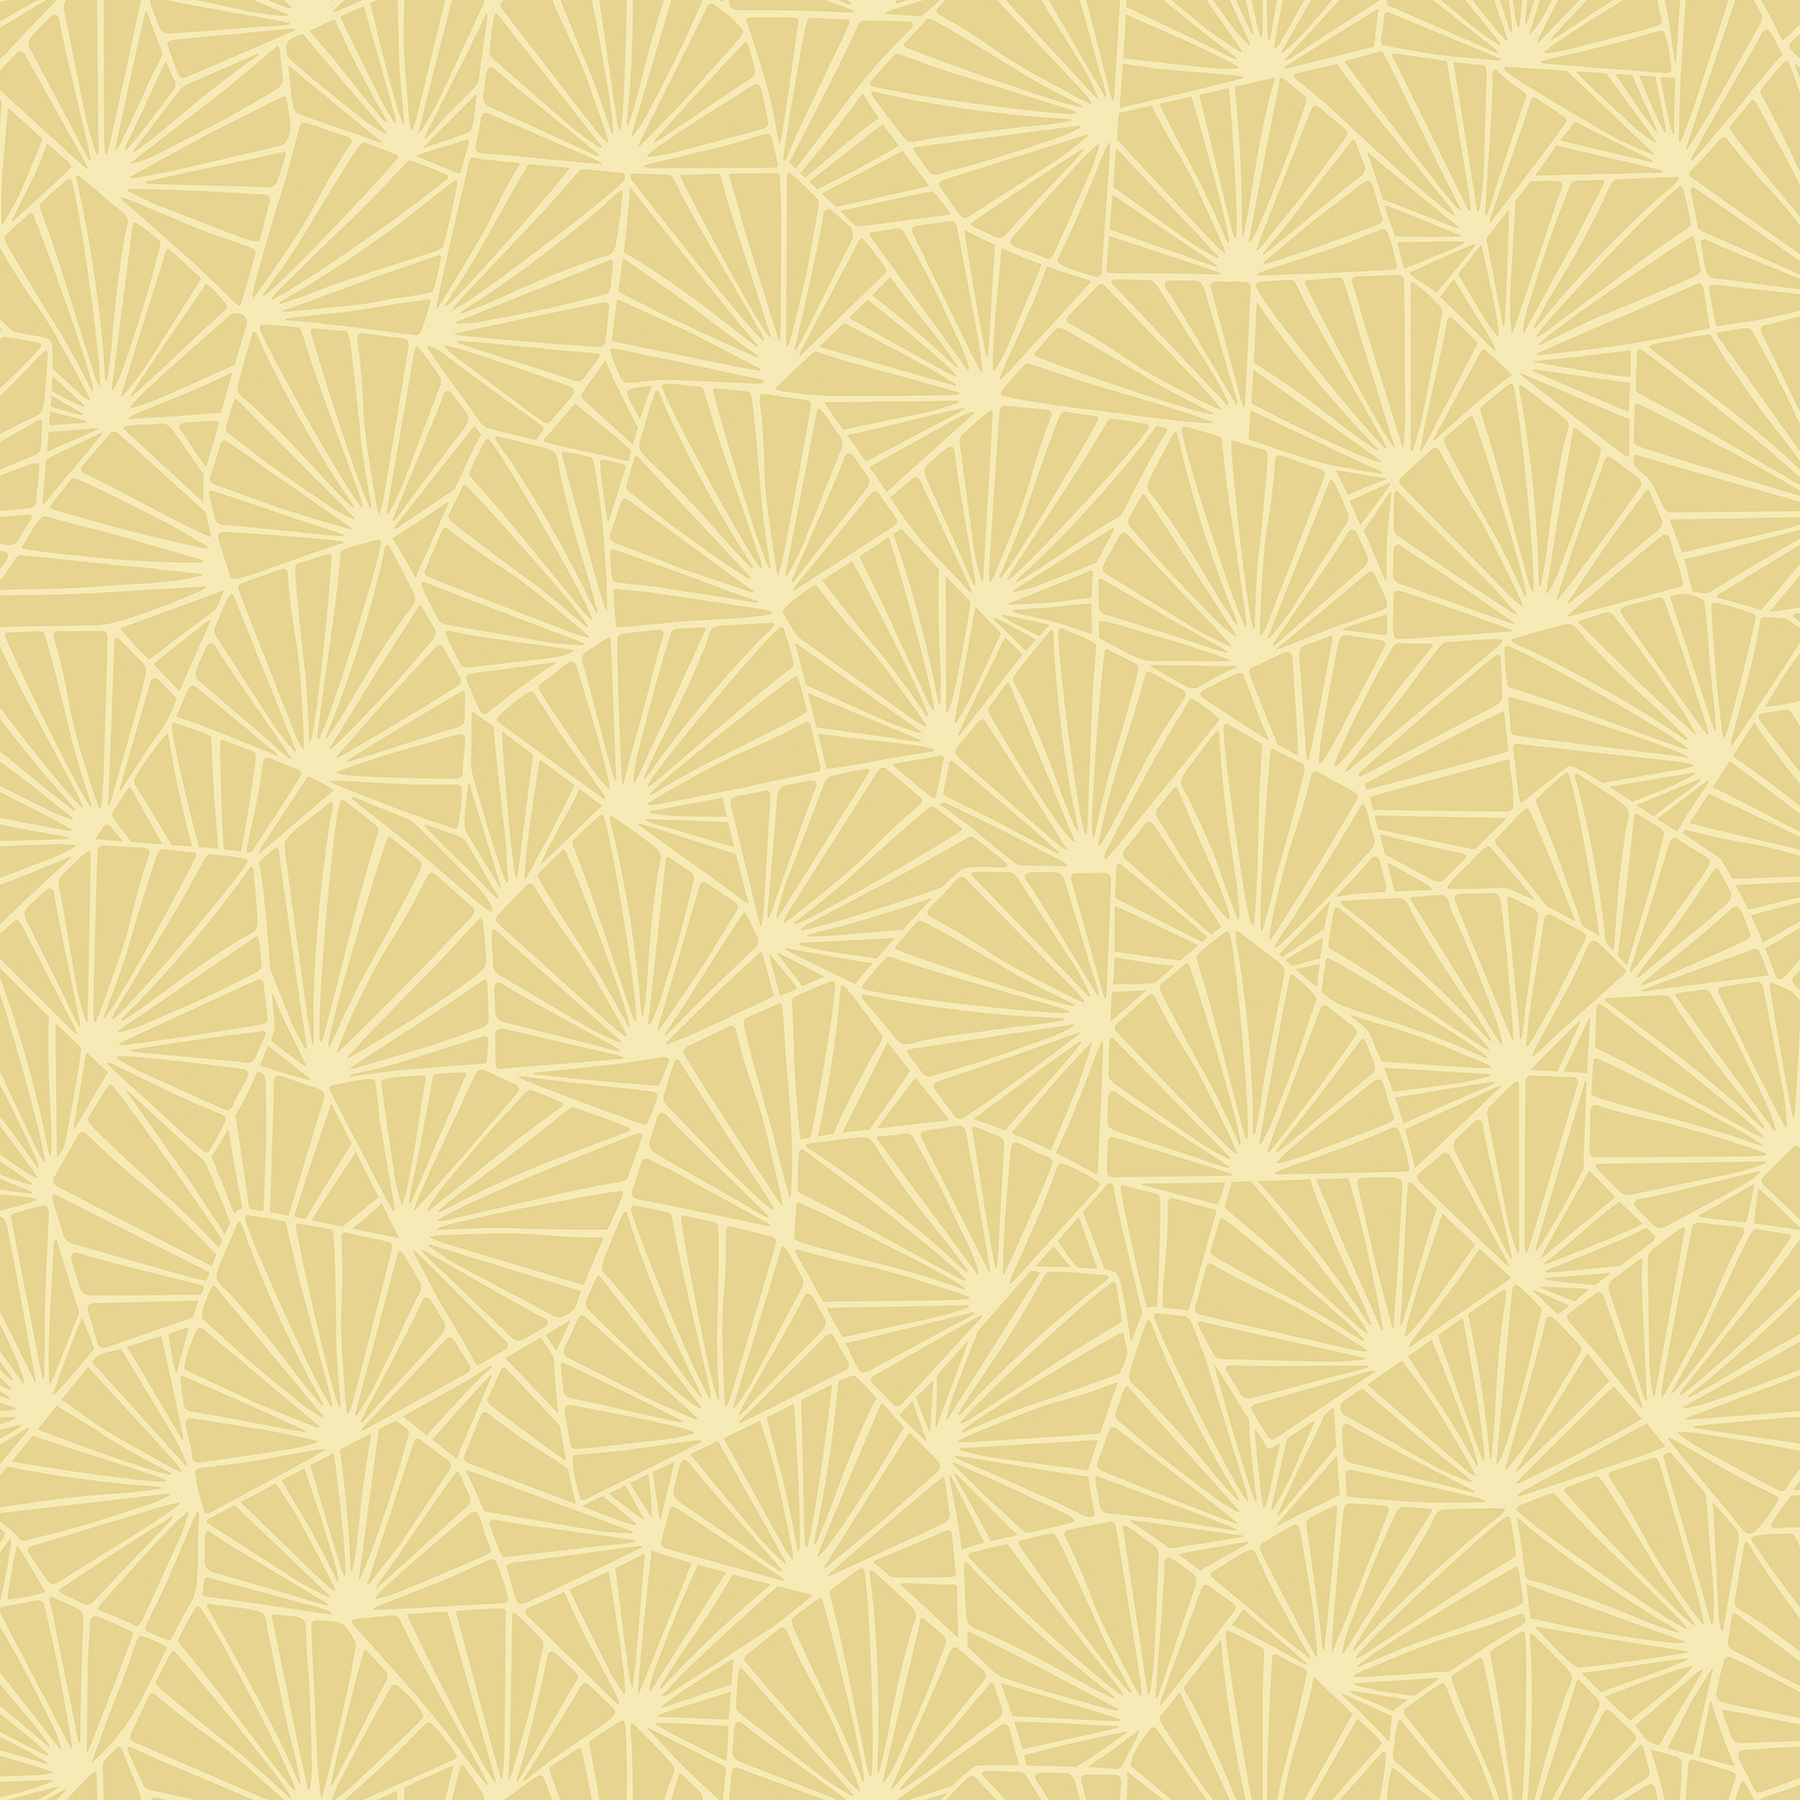 Picture of Blomma Yellow Geometric Wallpaper